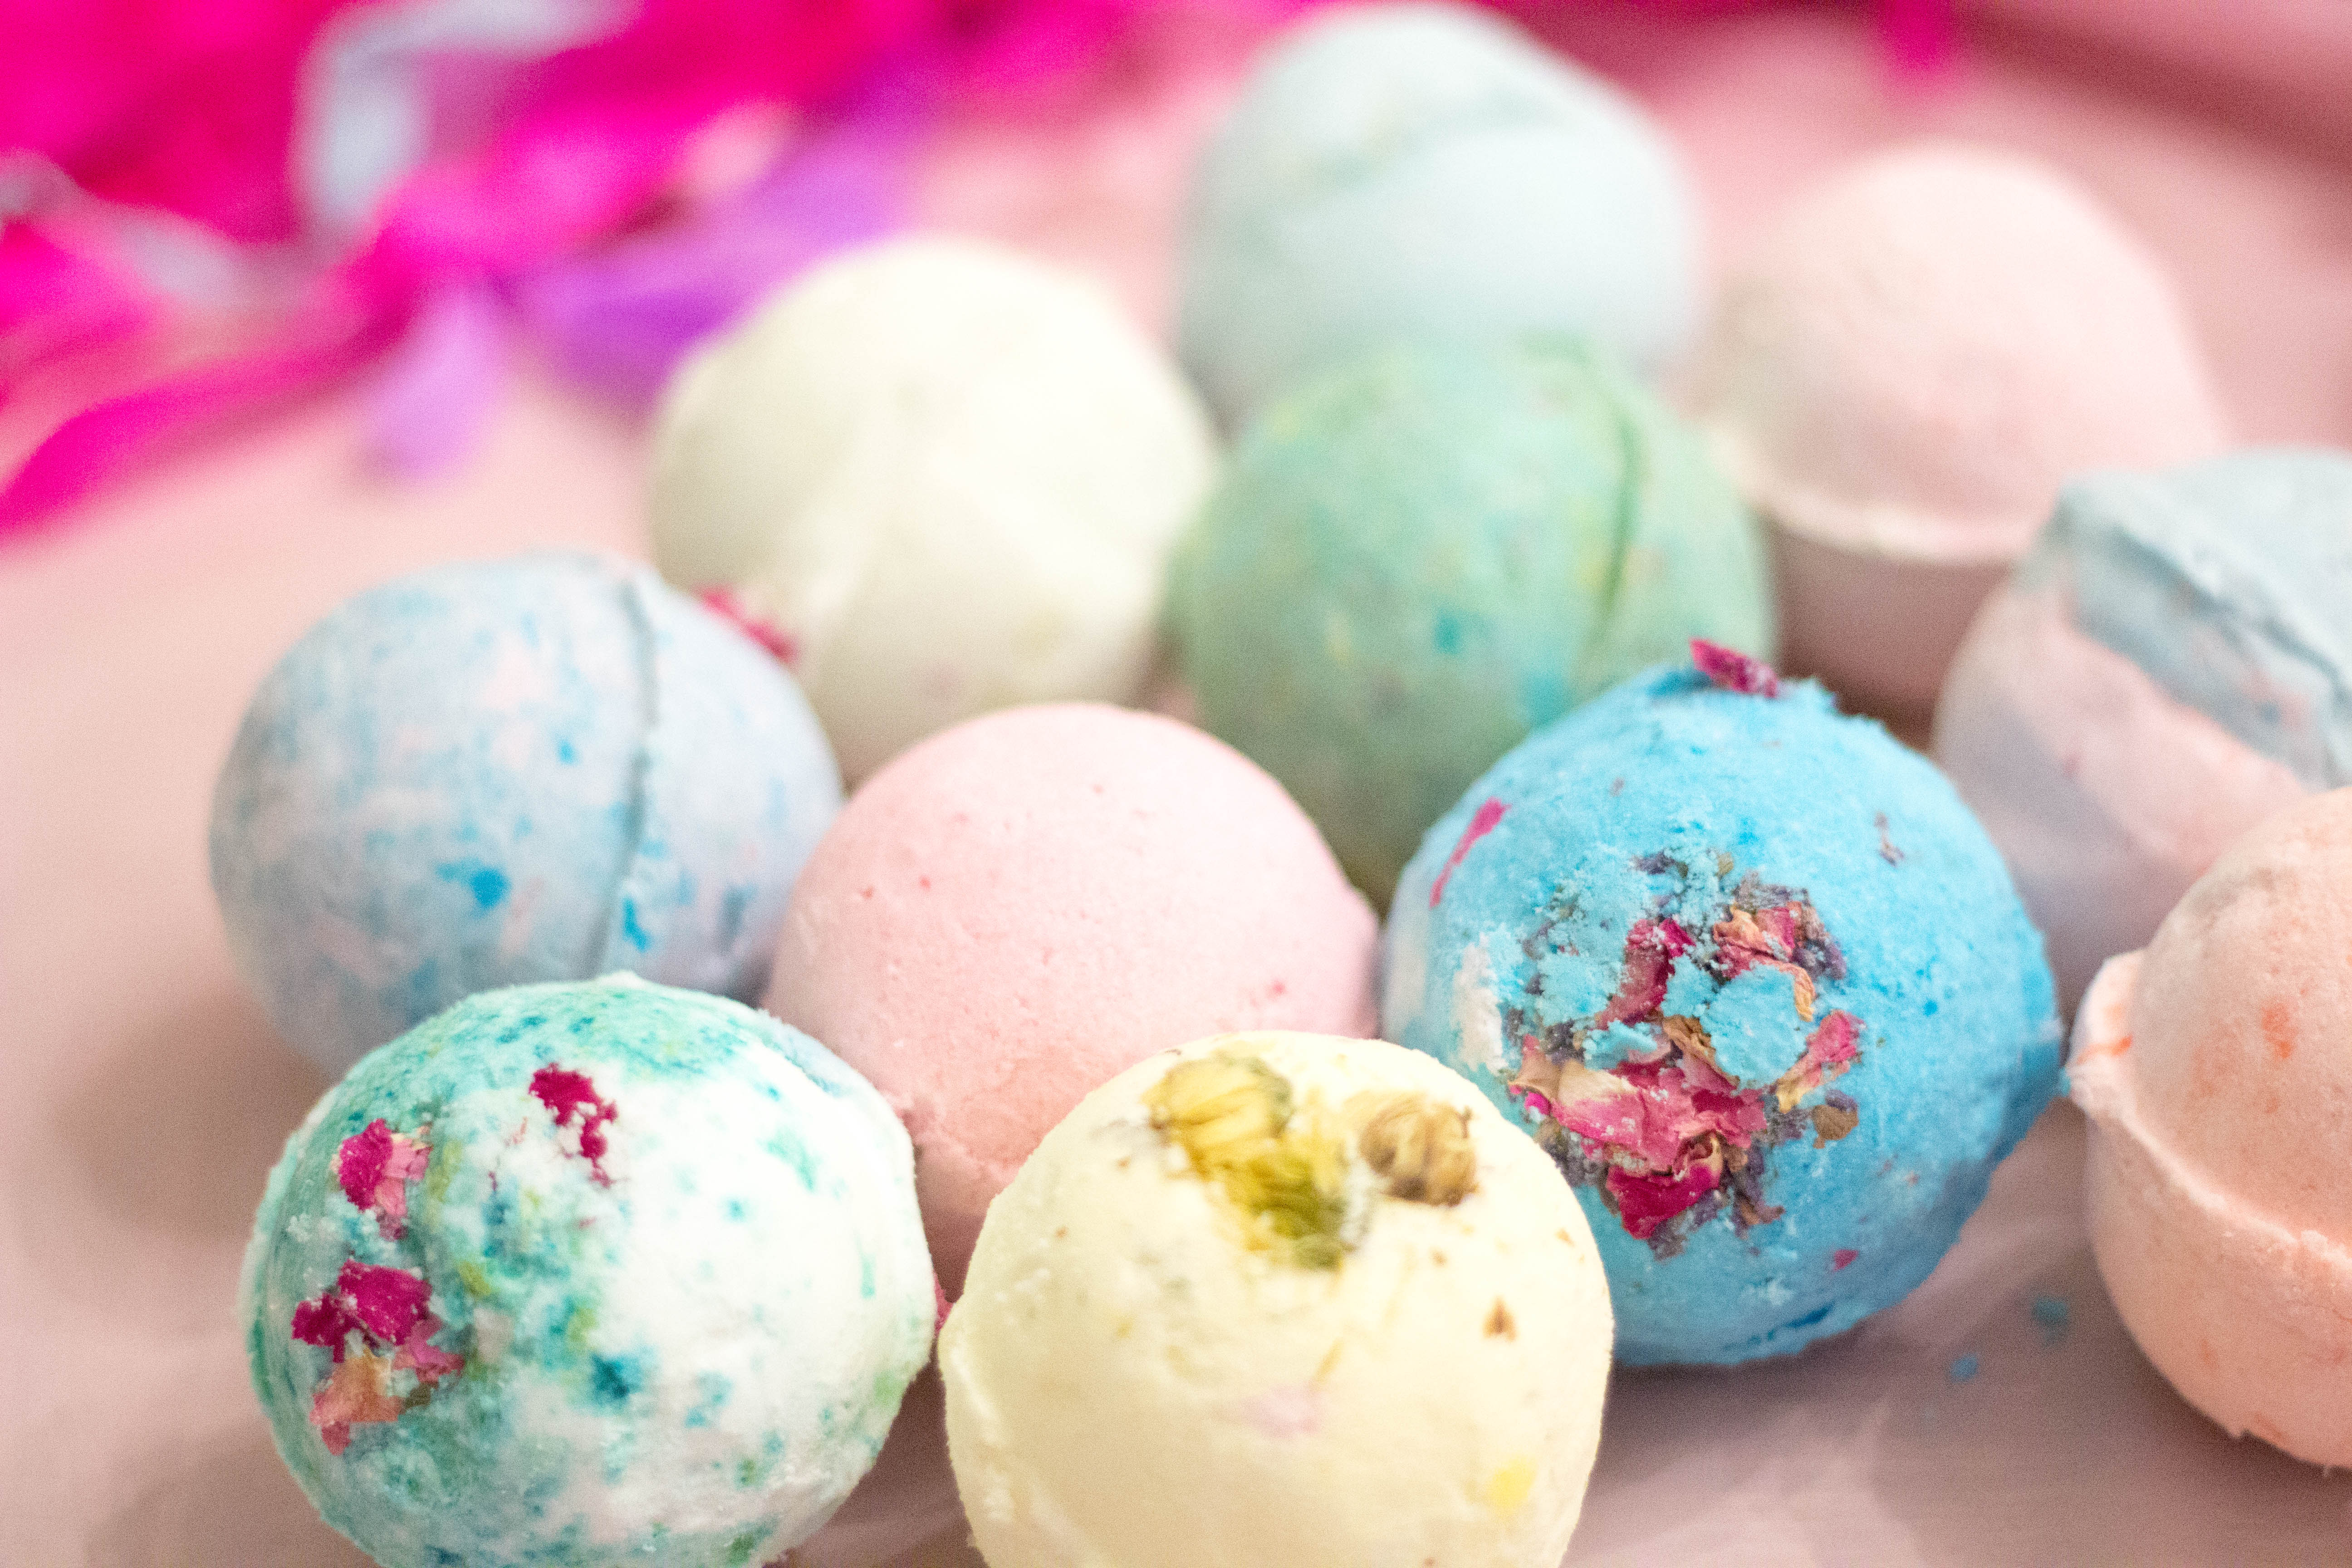 Why Buy When You Can DIY Your Own Giant Bath Bombs - Ritzy Parties